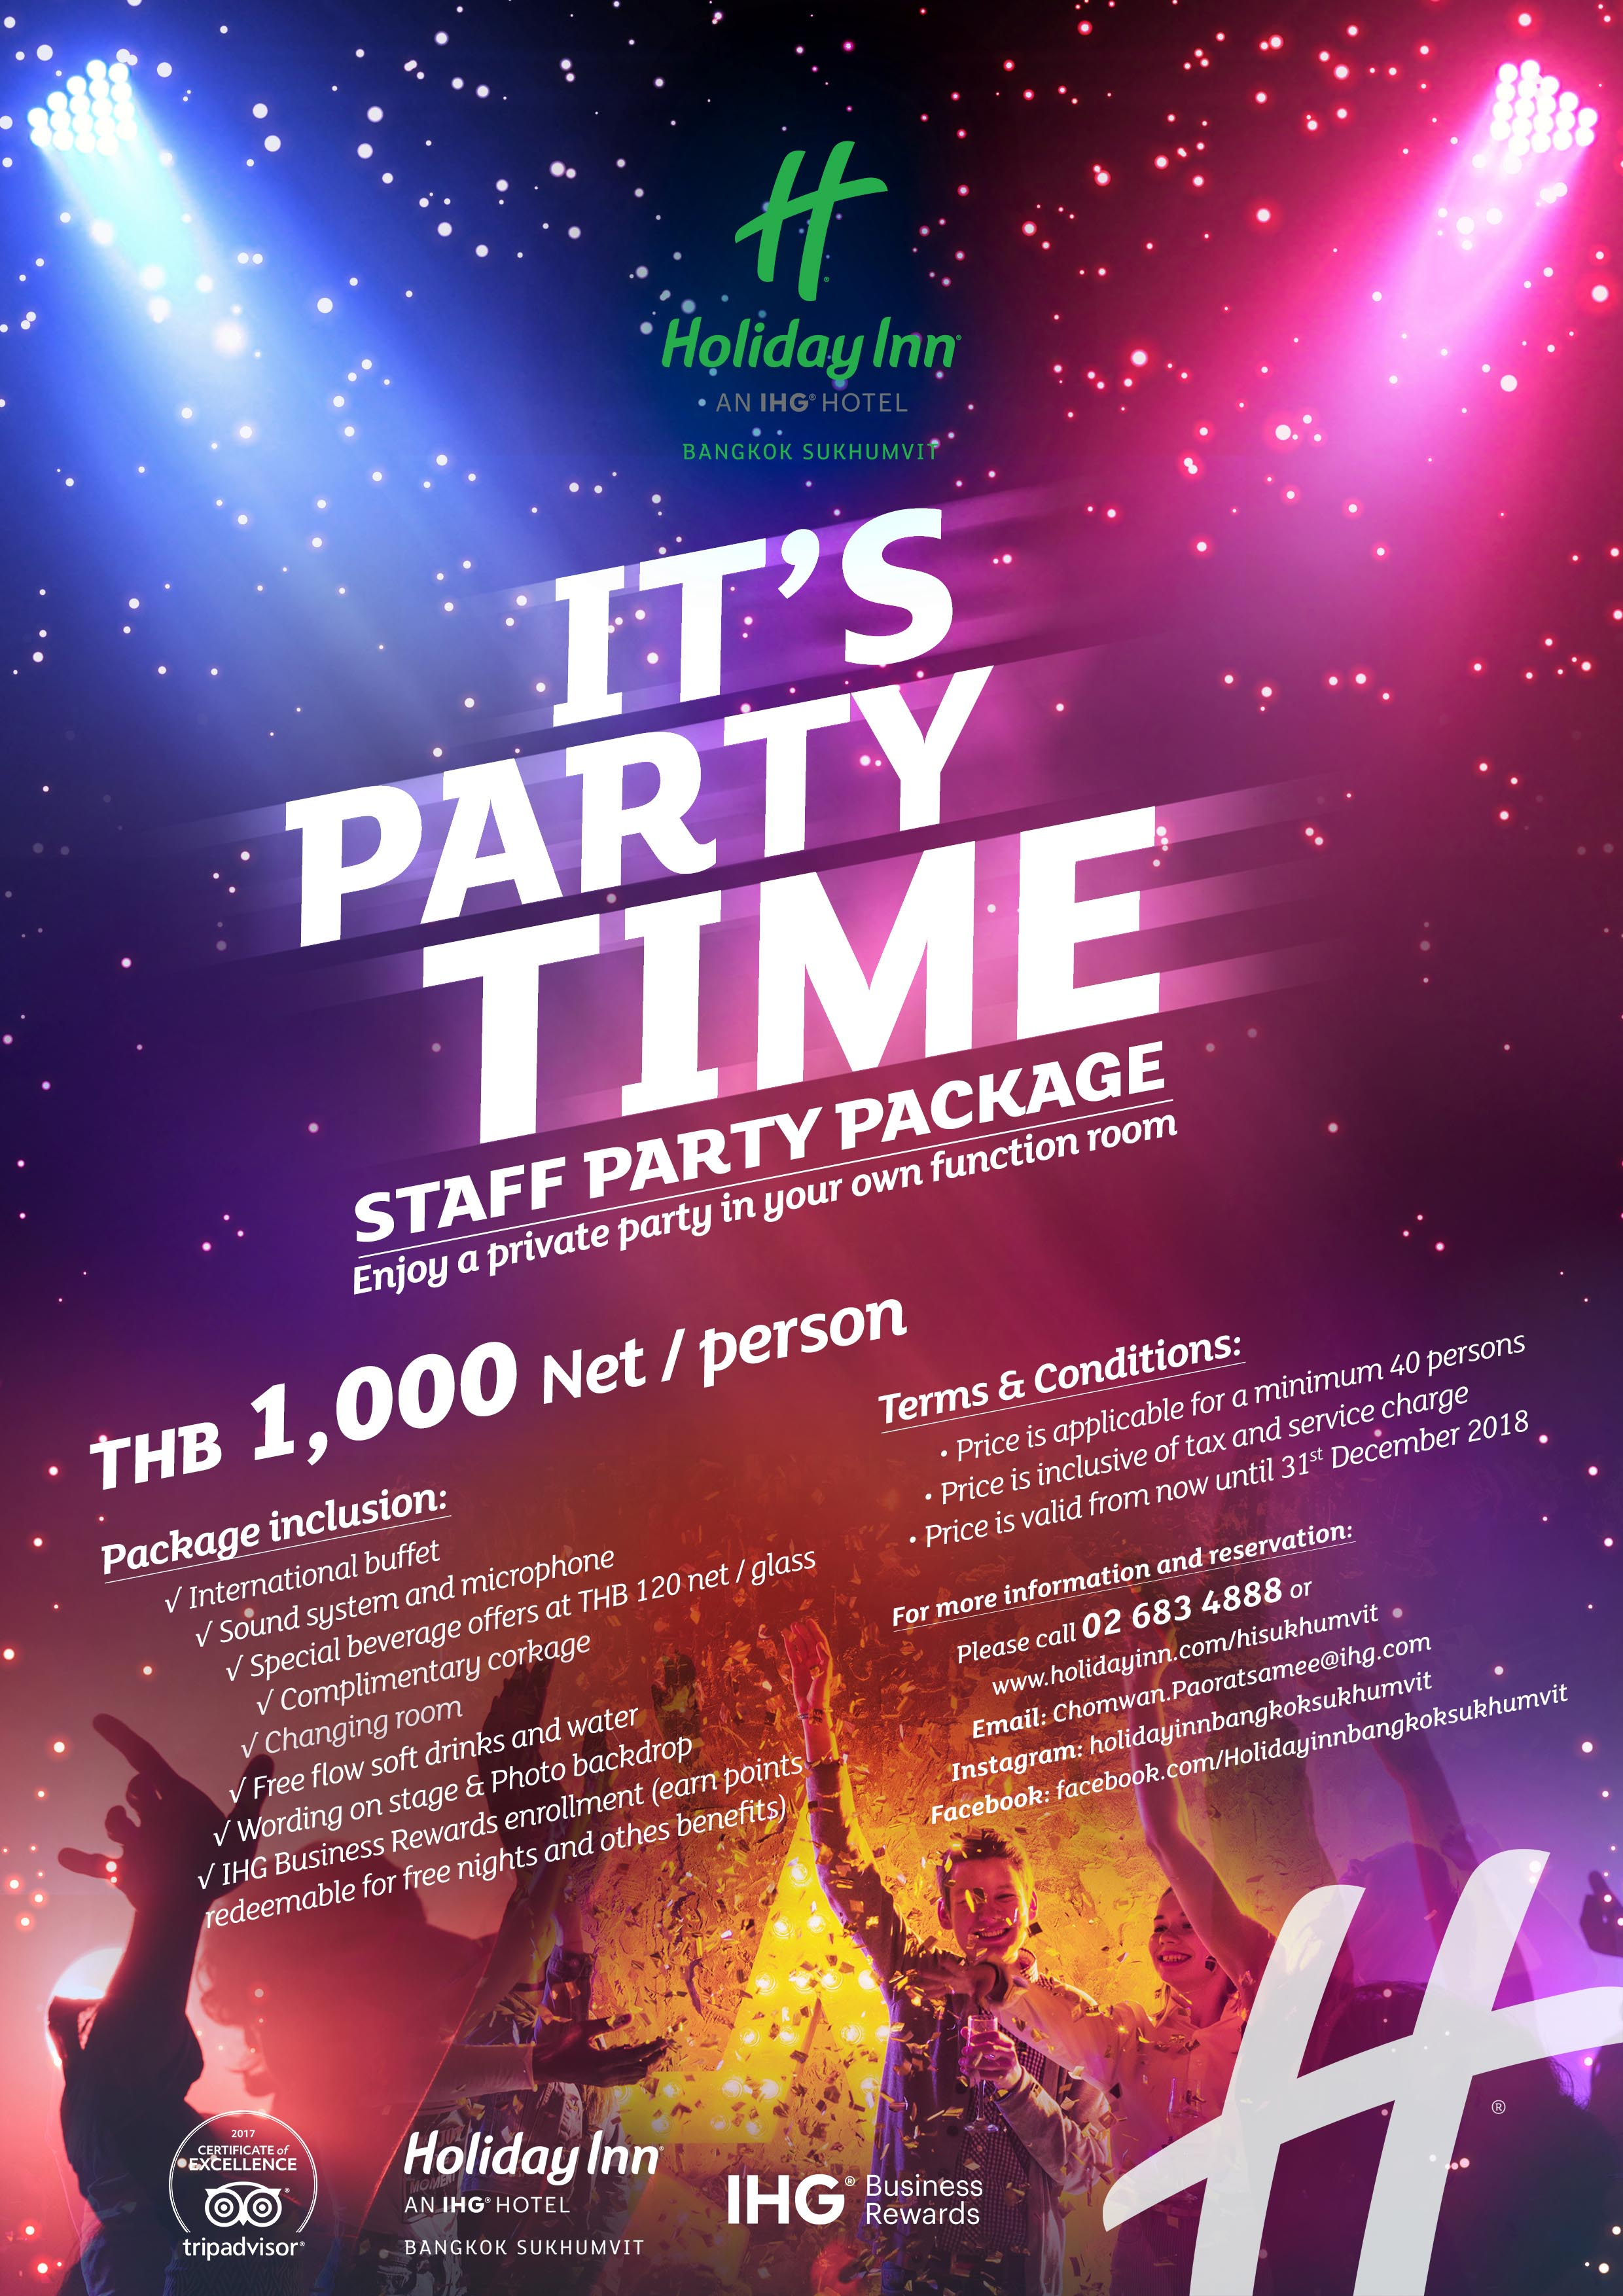 Staff Party Package